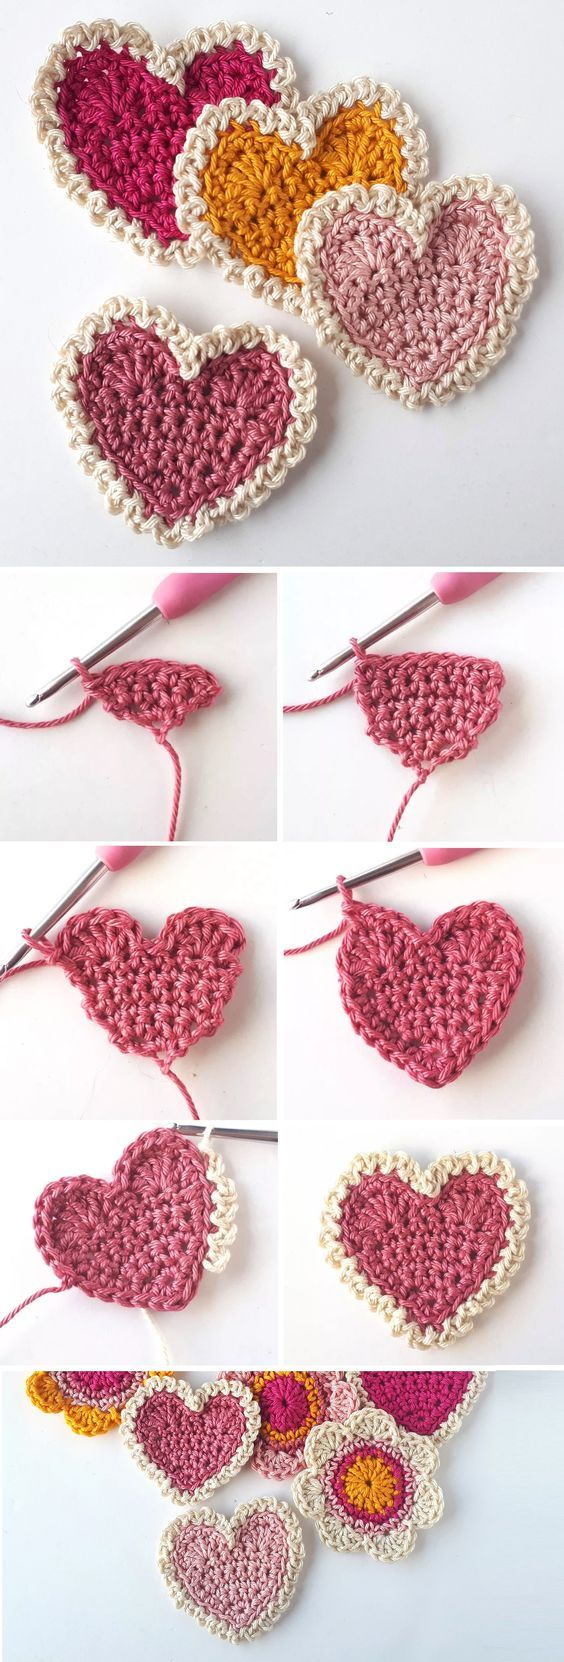 20+ Crochet Projects With Video Tutorial - Latest ideas information